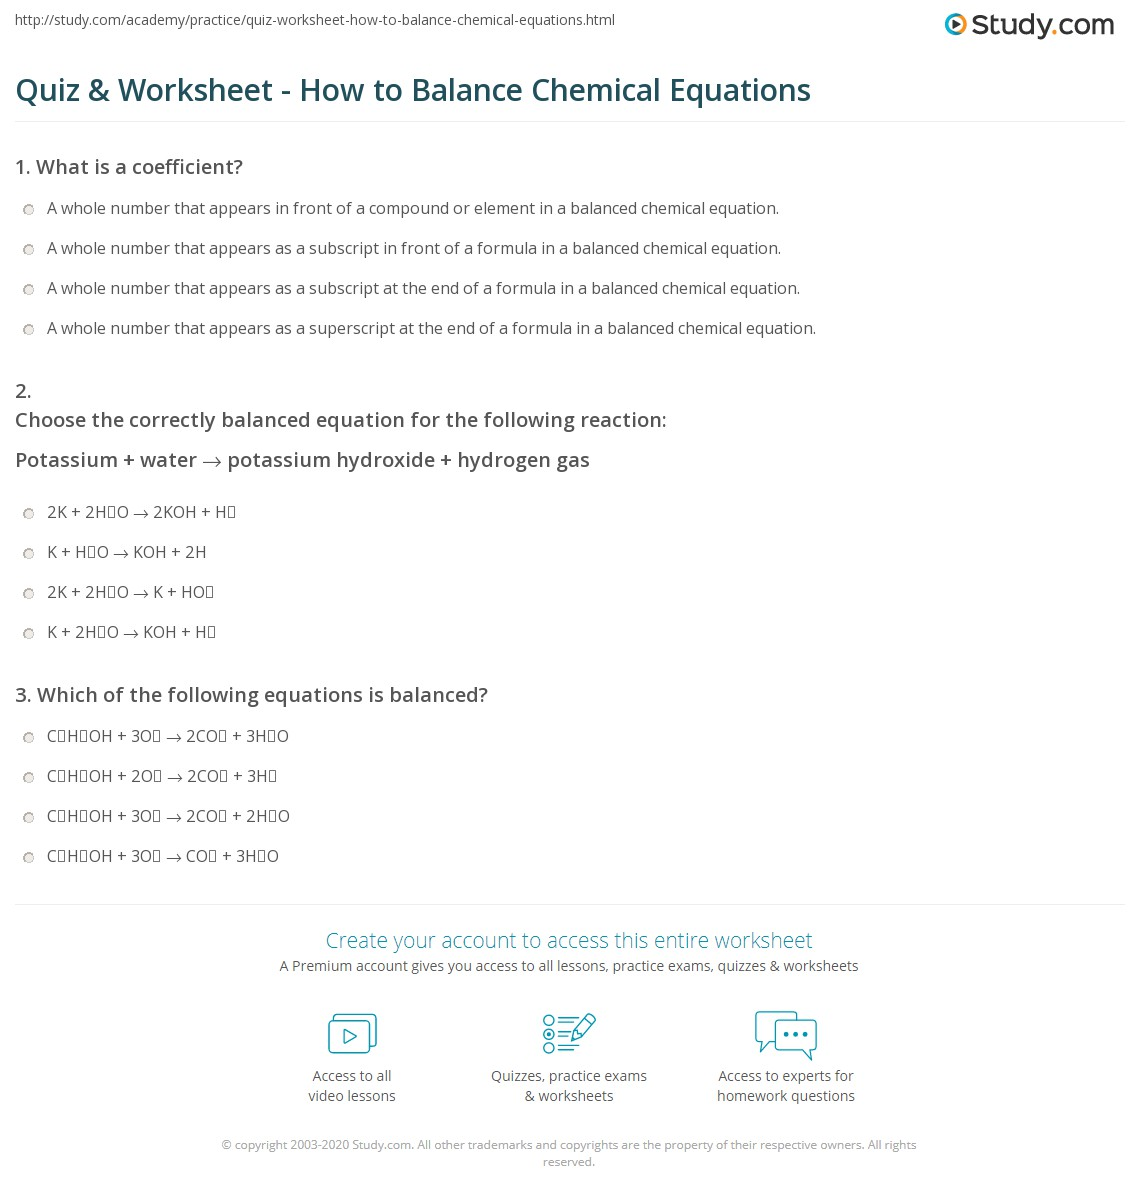 Quiz & Worksheet - How to Balance Chemical Equations | Study.com